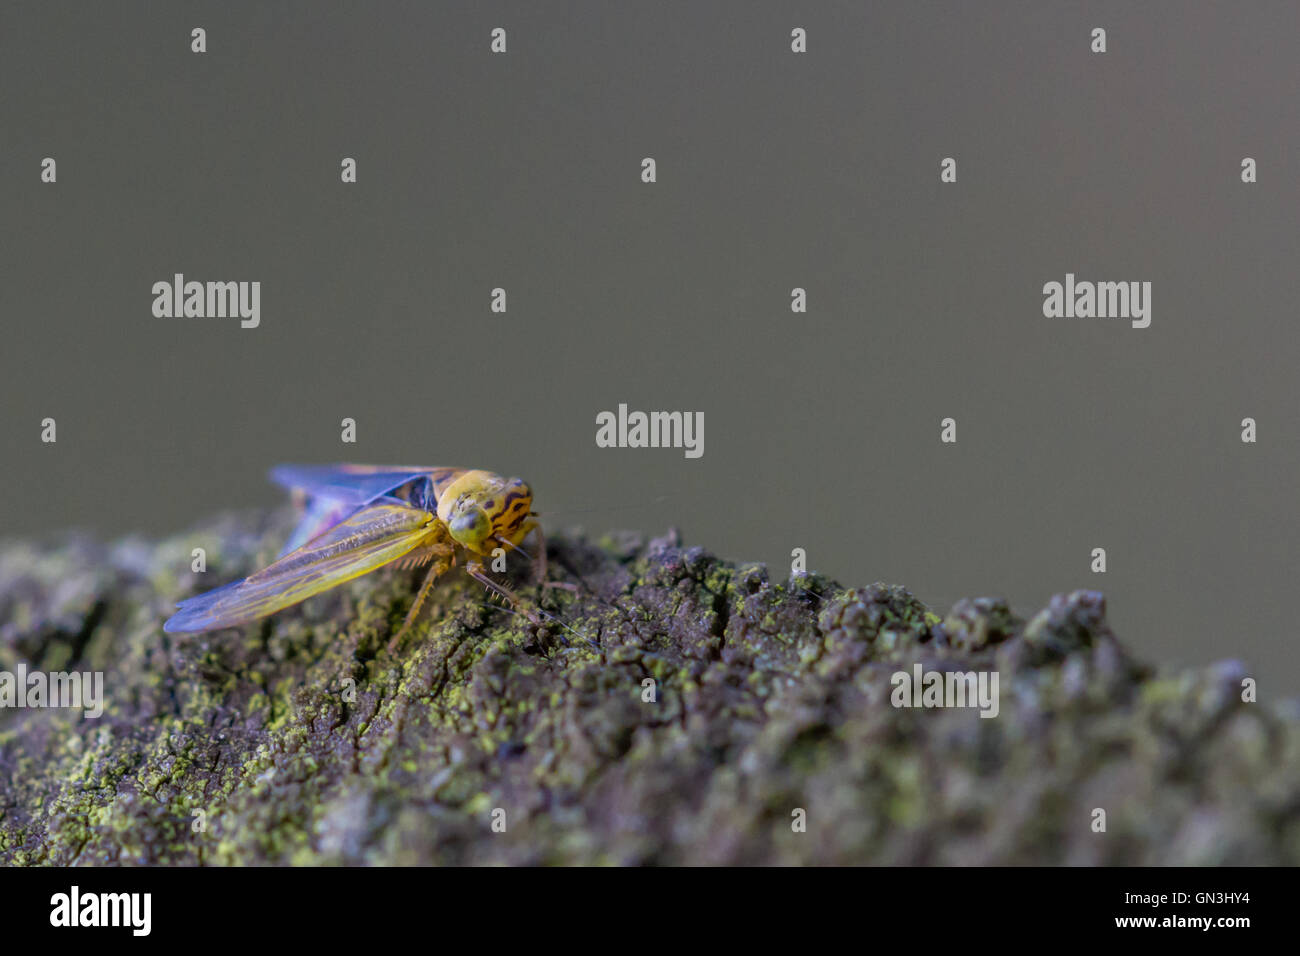 Newly hatched green leafhopper (Cicadella viridian) - Stock Image